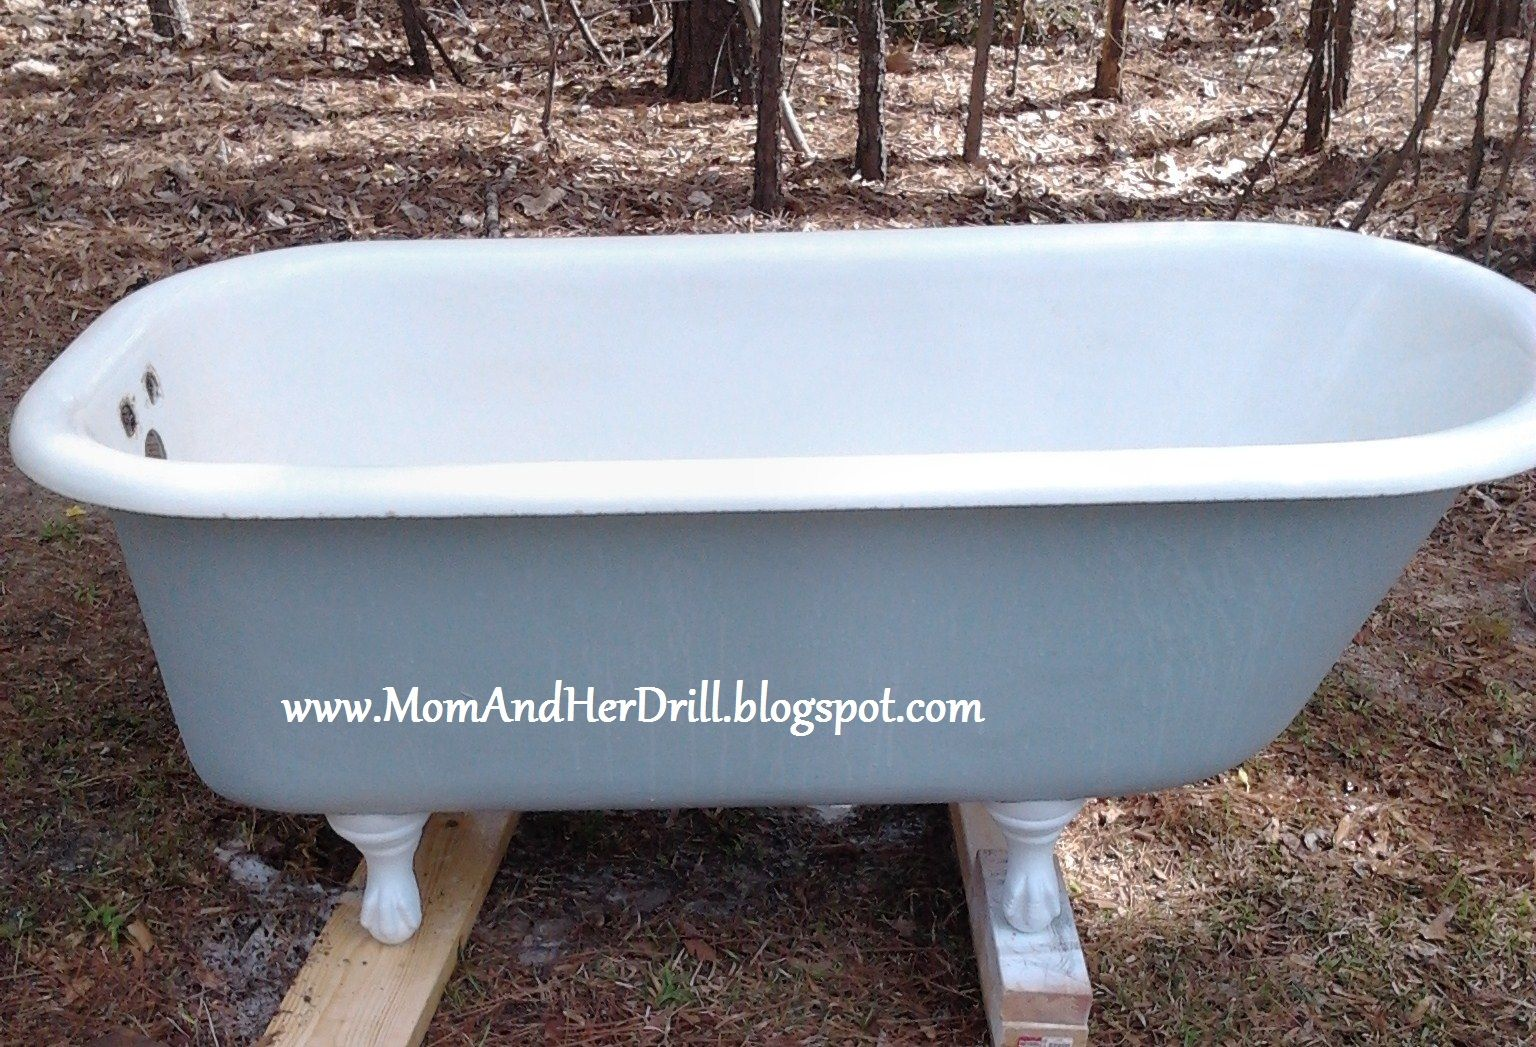 Mom and Her Drill: Refinishing the Porcelain Tub & Sinks: The bottle ...